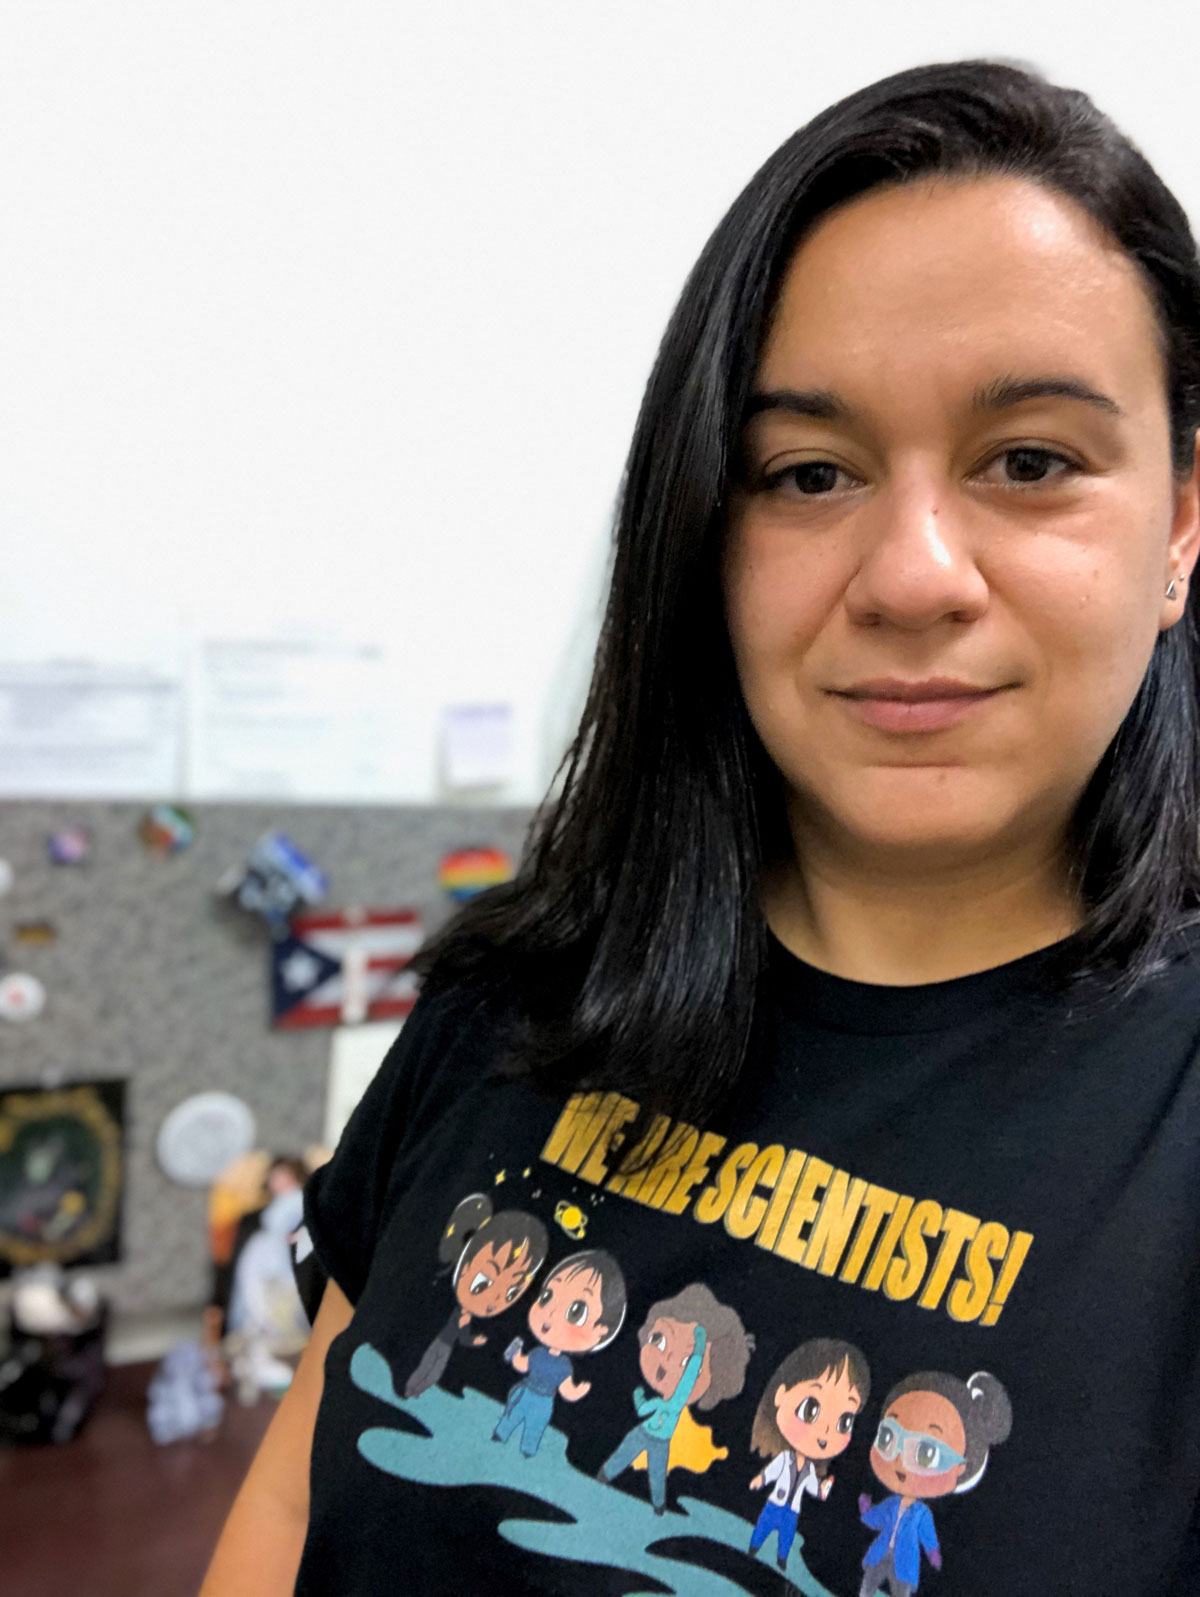 """Semarhy Quinones-Soto wearing a black shirt reading """"We Are Scientists"""""""